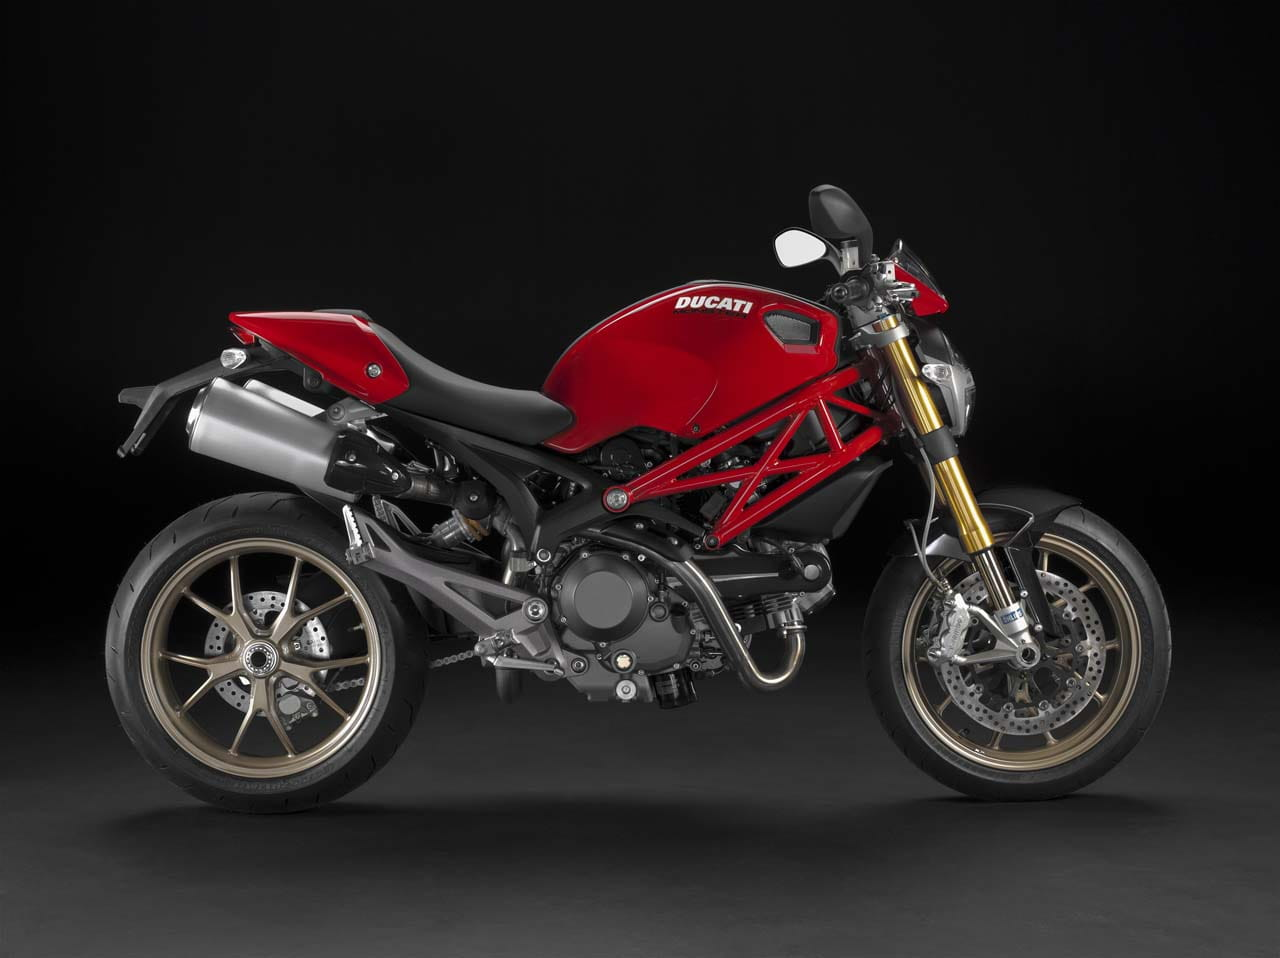 ducati monster 1100 y 1100s foto 3 de 6. Black Bedroom Furniture Sets. Home Design Ideas